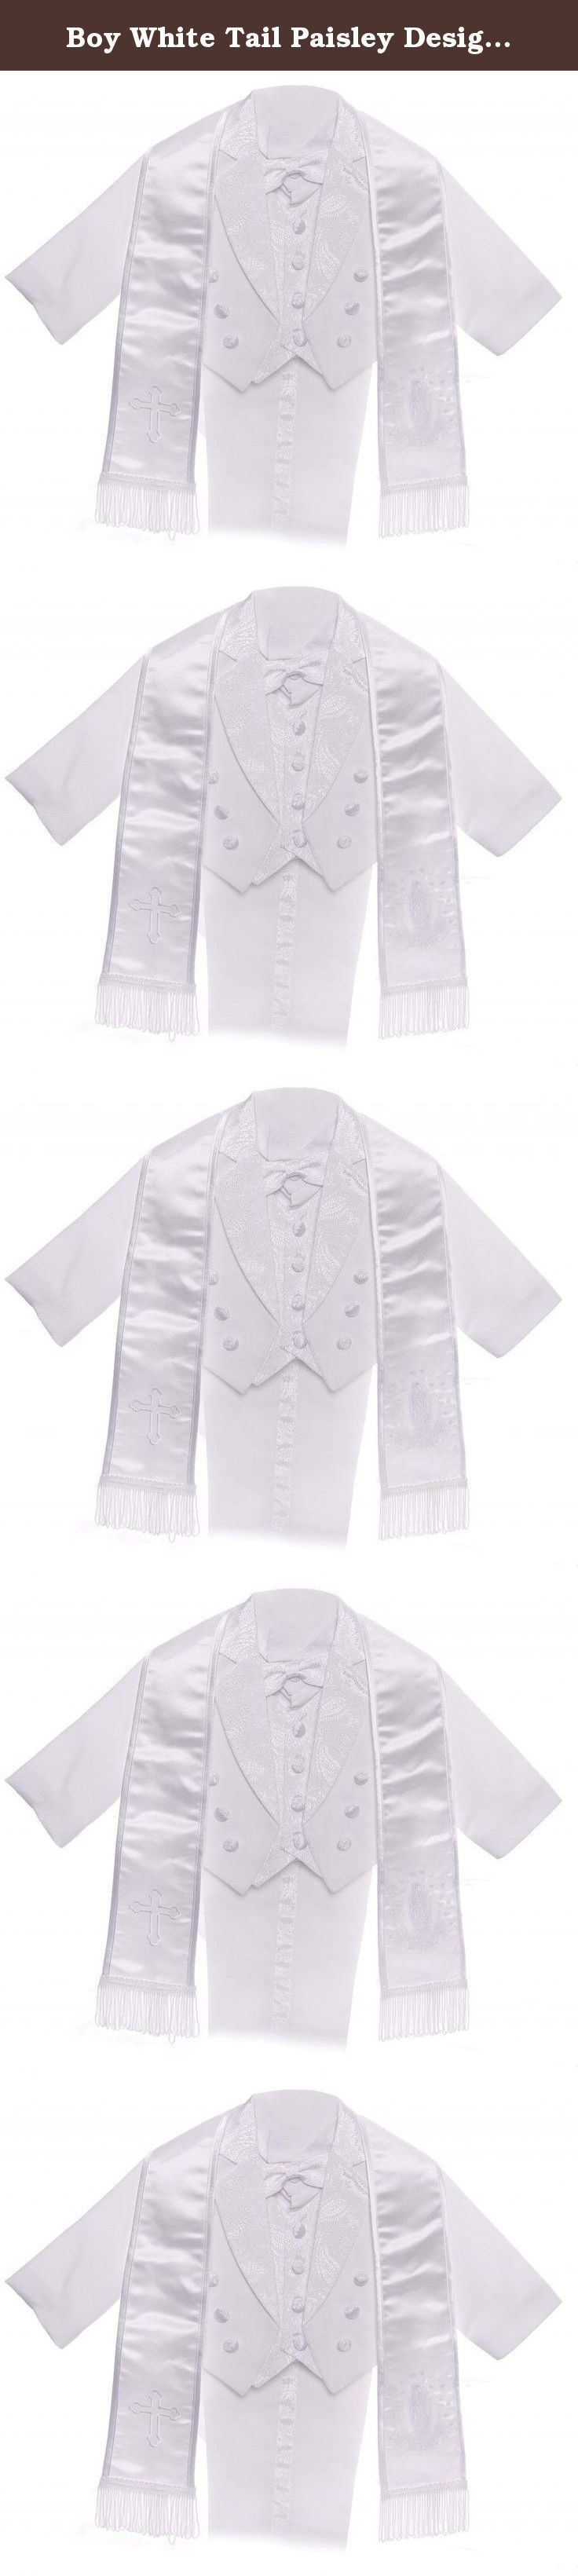 Boy White Tail Paisley Design Christening Virgin Embroidered Tuxedo size 6M. This white tail paisley design tuxedo has an embroidered Virgin in the back. It is a 6PC Set. It includes the Jacket, Vest, Shirt, Pants, Embroidered Scarf, and Bow-tie. There is an additional, optional scarf with a cross embroidery on the left bottom and the Virgin on the right bottom. This classic white tuxedo is great for the special event. Available in sizes 6M-7.